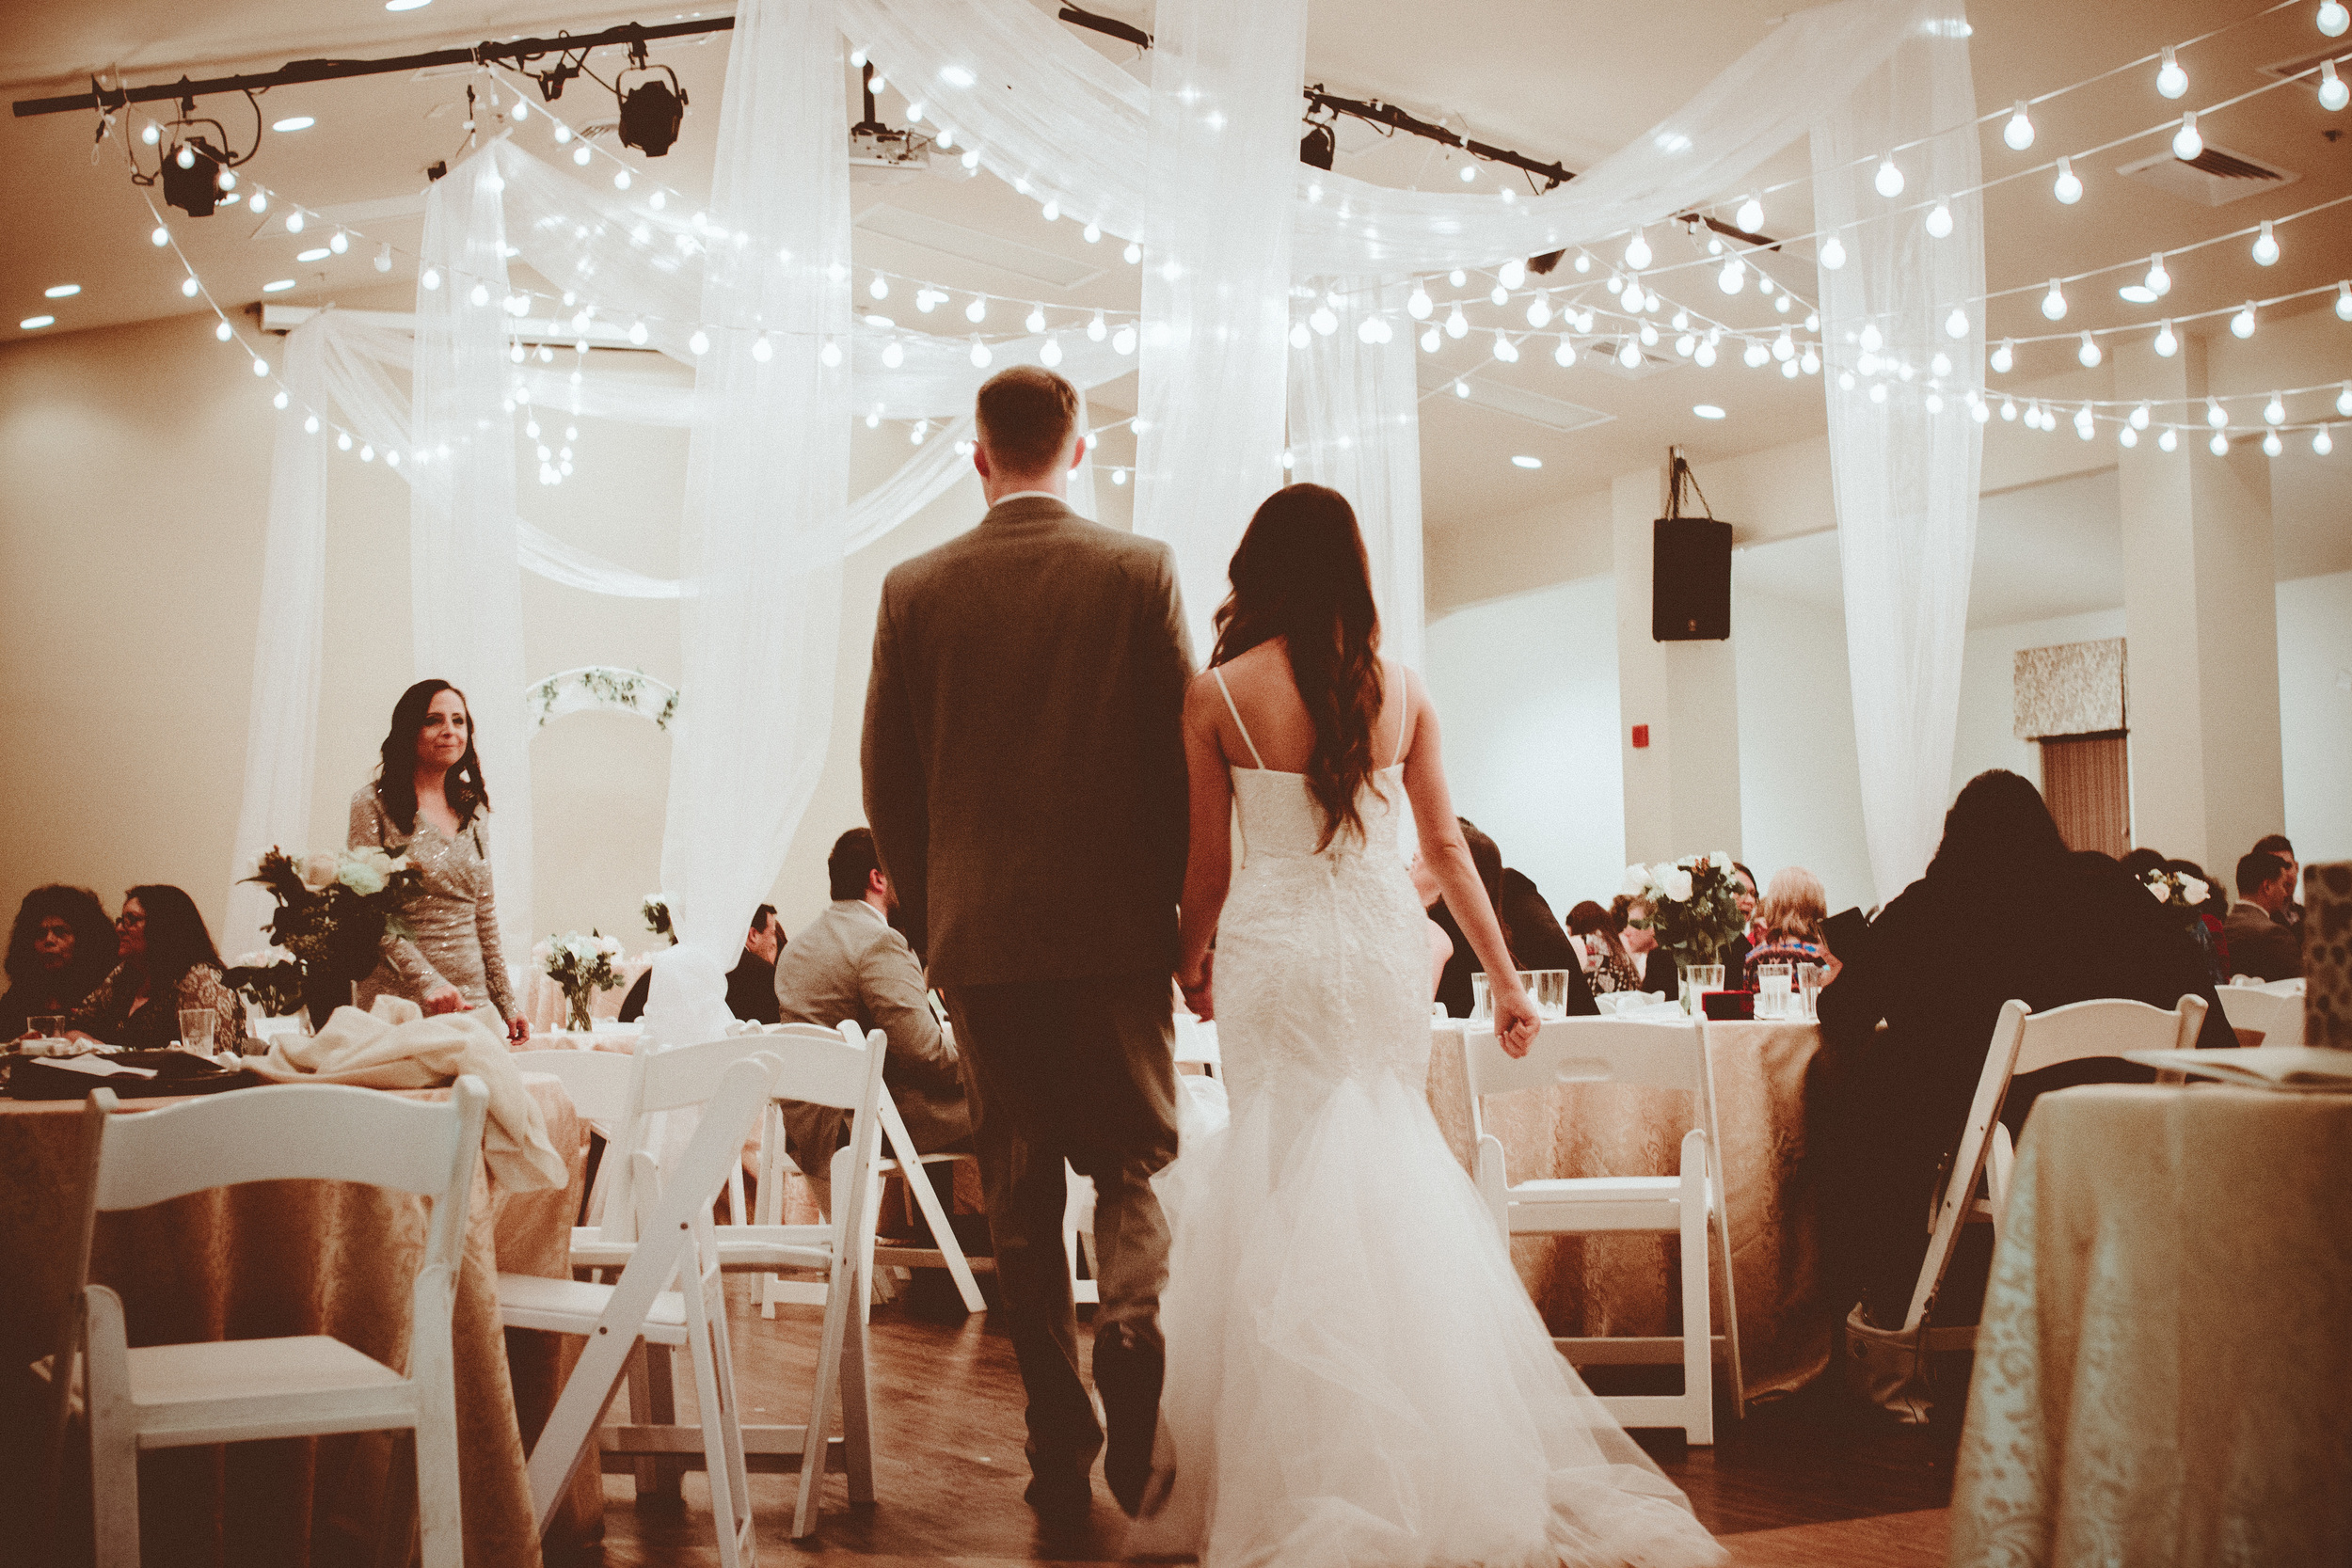 film style. Jason + Miriam Stockstill. Wedding at TRC Baker, Louisiana. Images by Christi Childs the picture people LA.